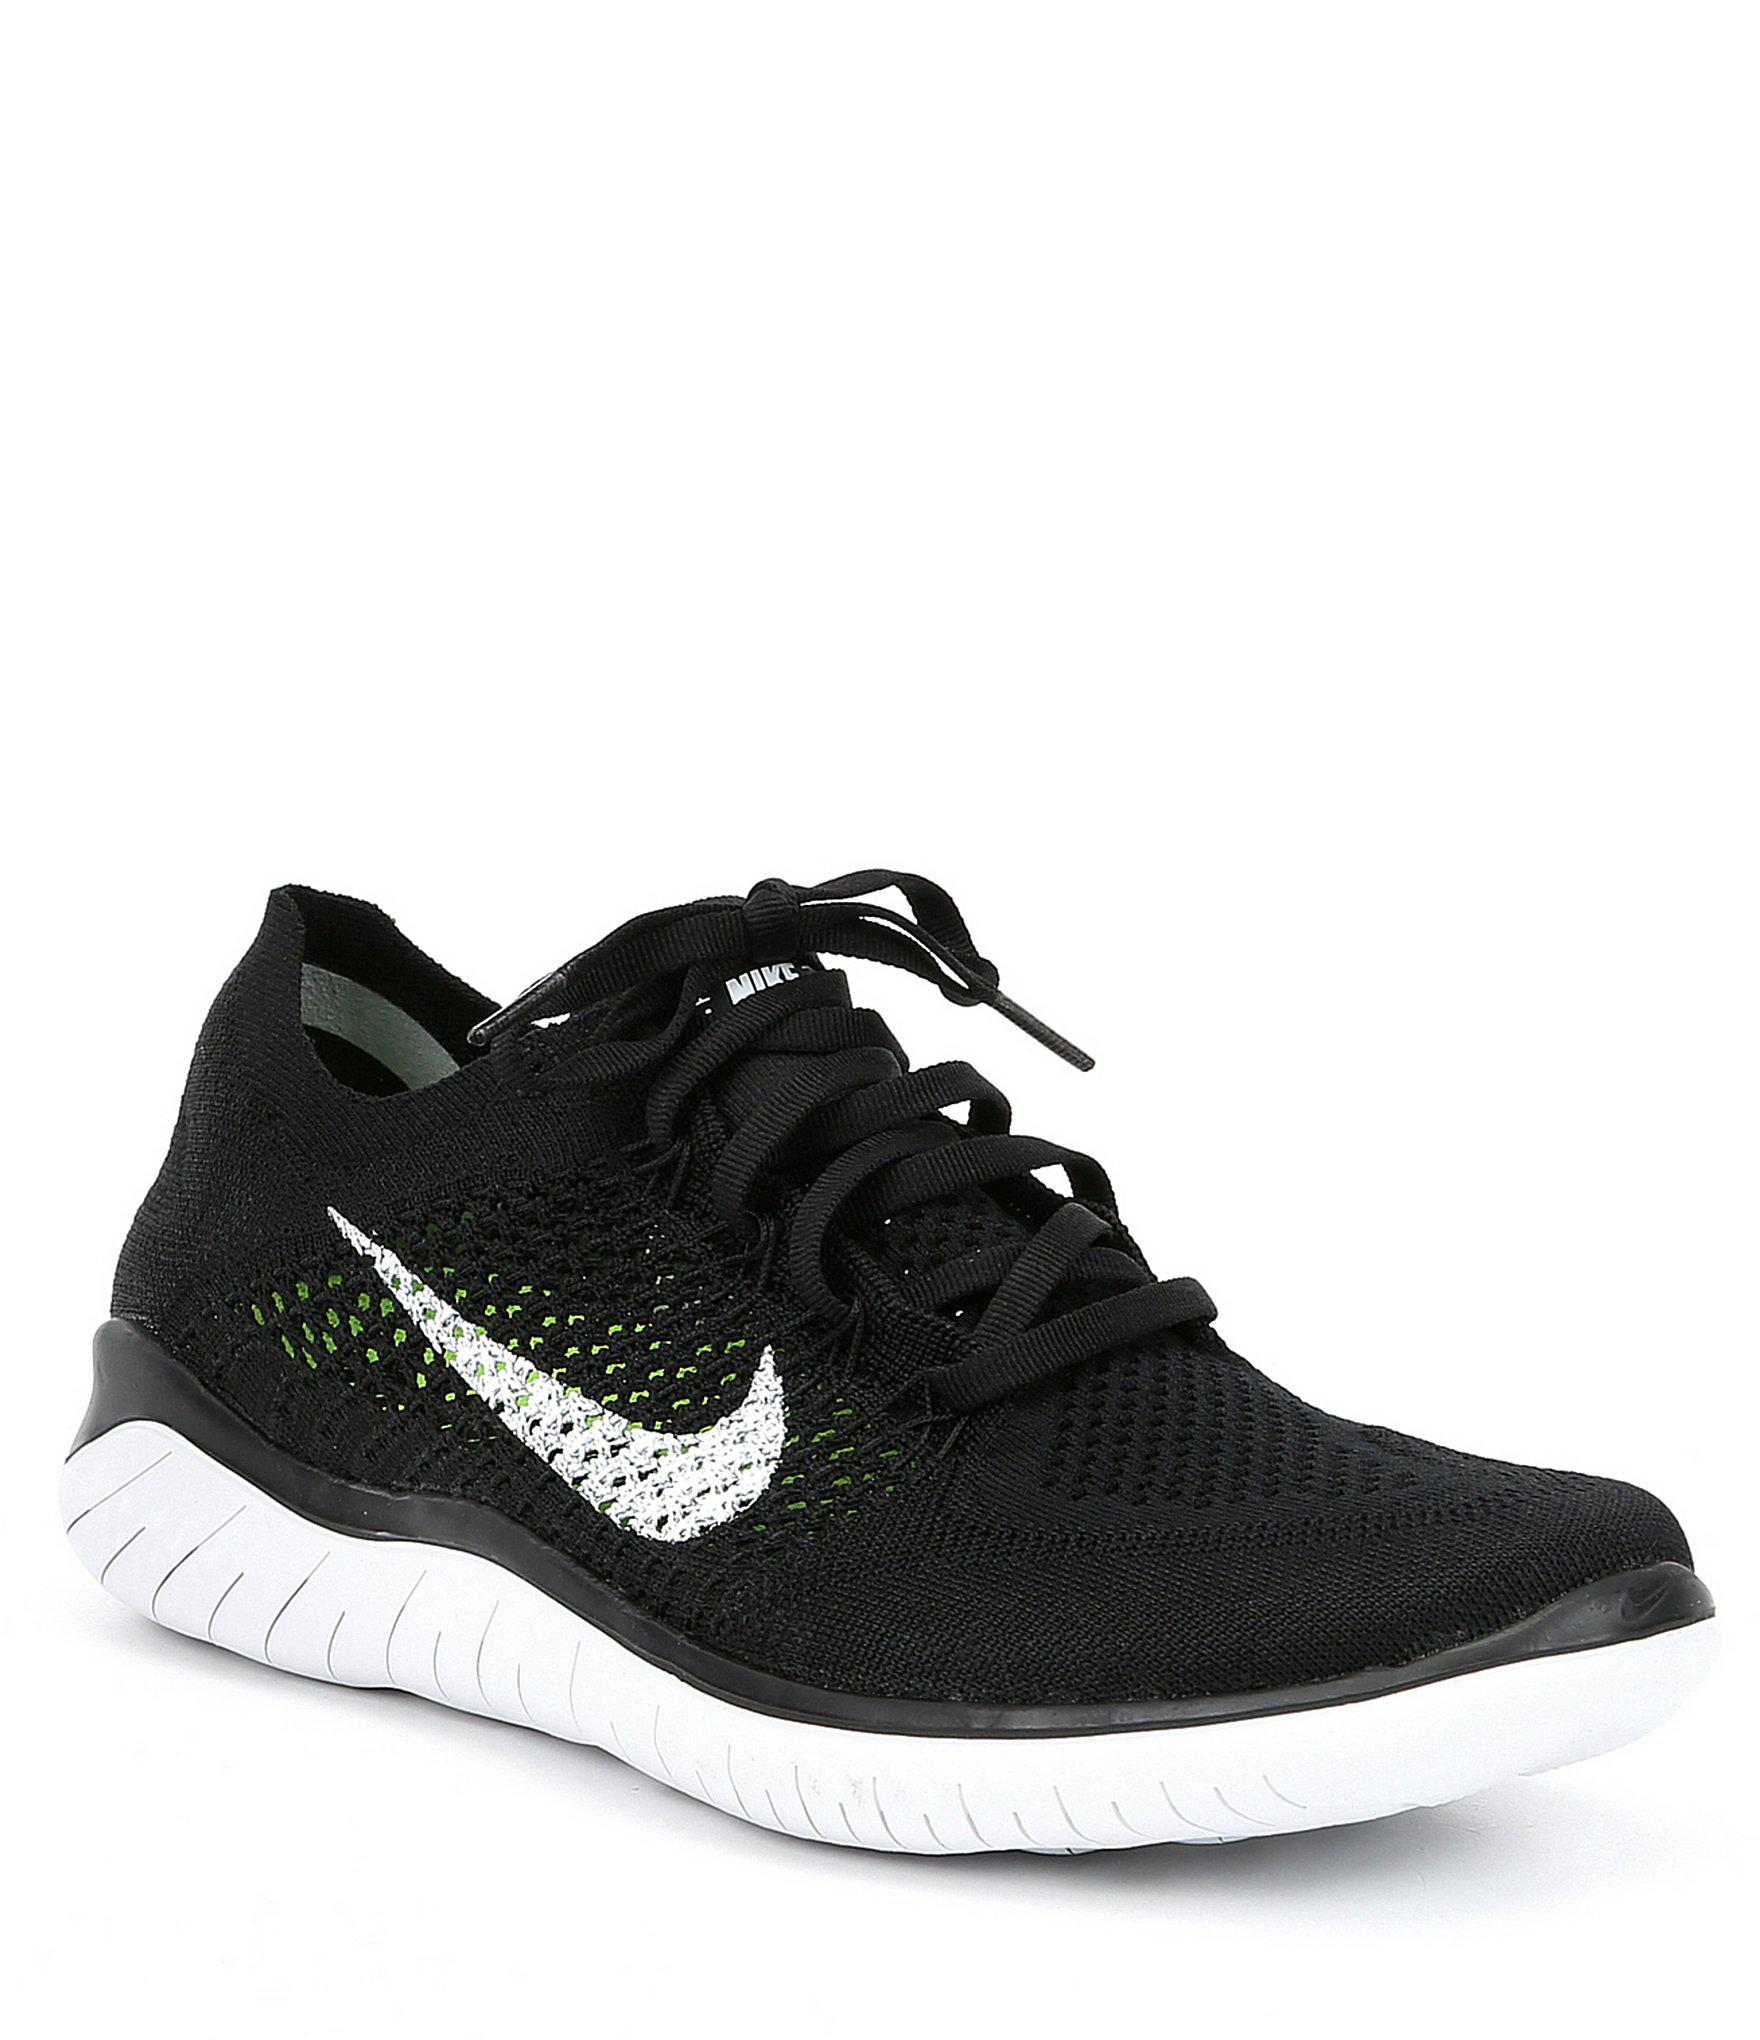 ca32904a4fed Lyst - Nike Men s Free Rn Flyknit Running Shoes in Black for Men